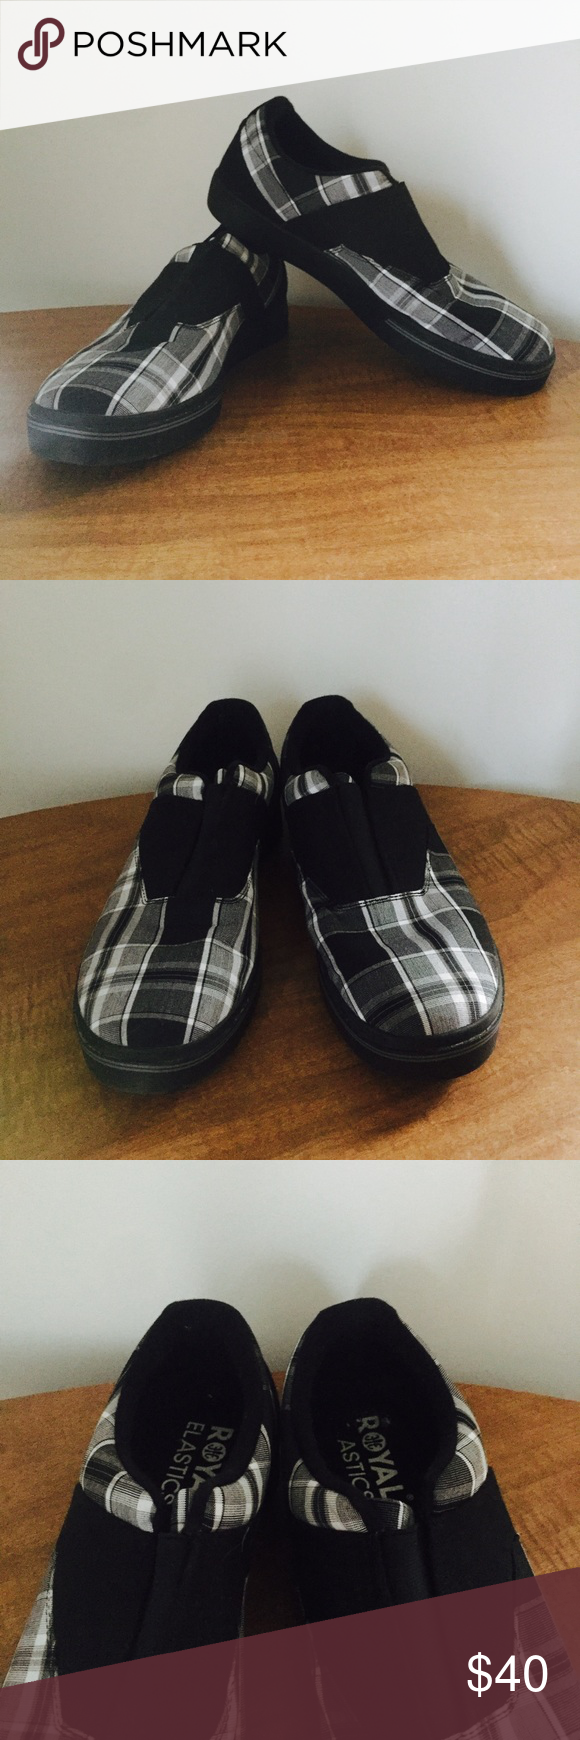 Royal Elastics Plaid Slip-Ons These were only worn once for the movie Mockingjay: Part 1. Very popular European brand. Black and white Plaid in a size 9. Very comfortable and soft. Royal Elastics Shoes Loafers & Slip-Ons